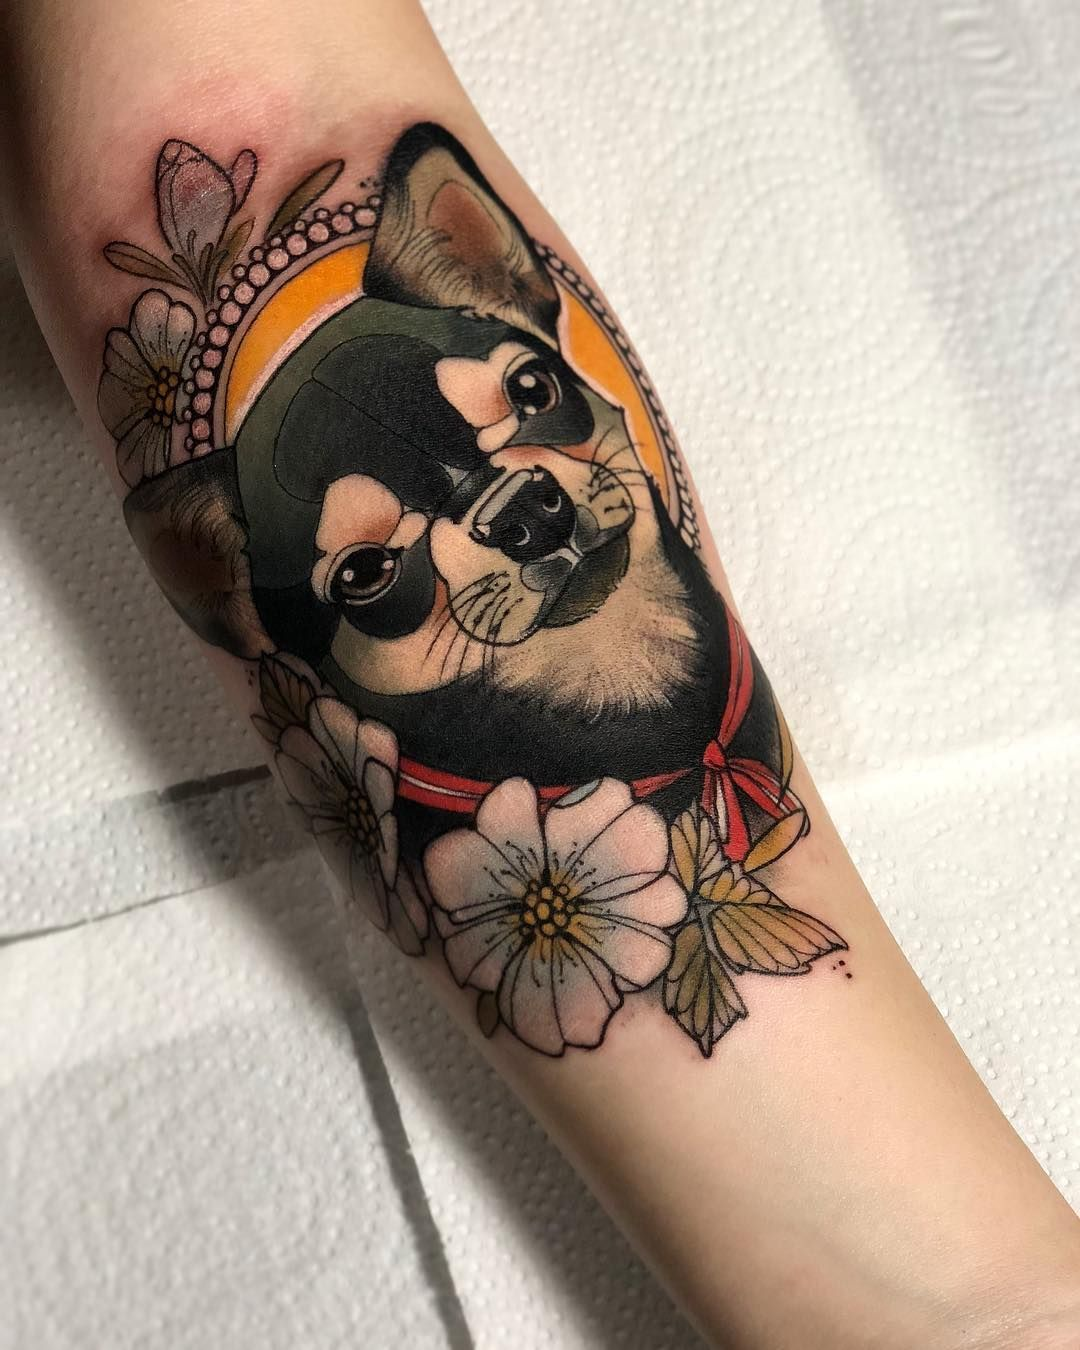 Chihuahua with rose cherokee dog in style neo traditional art